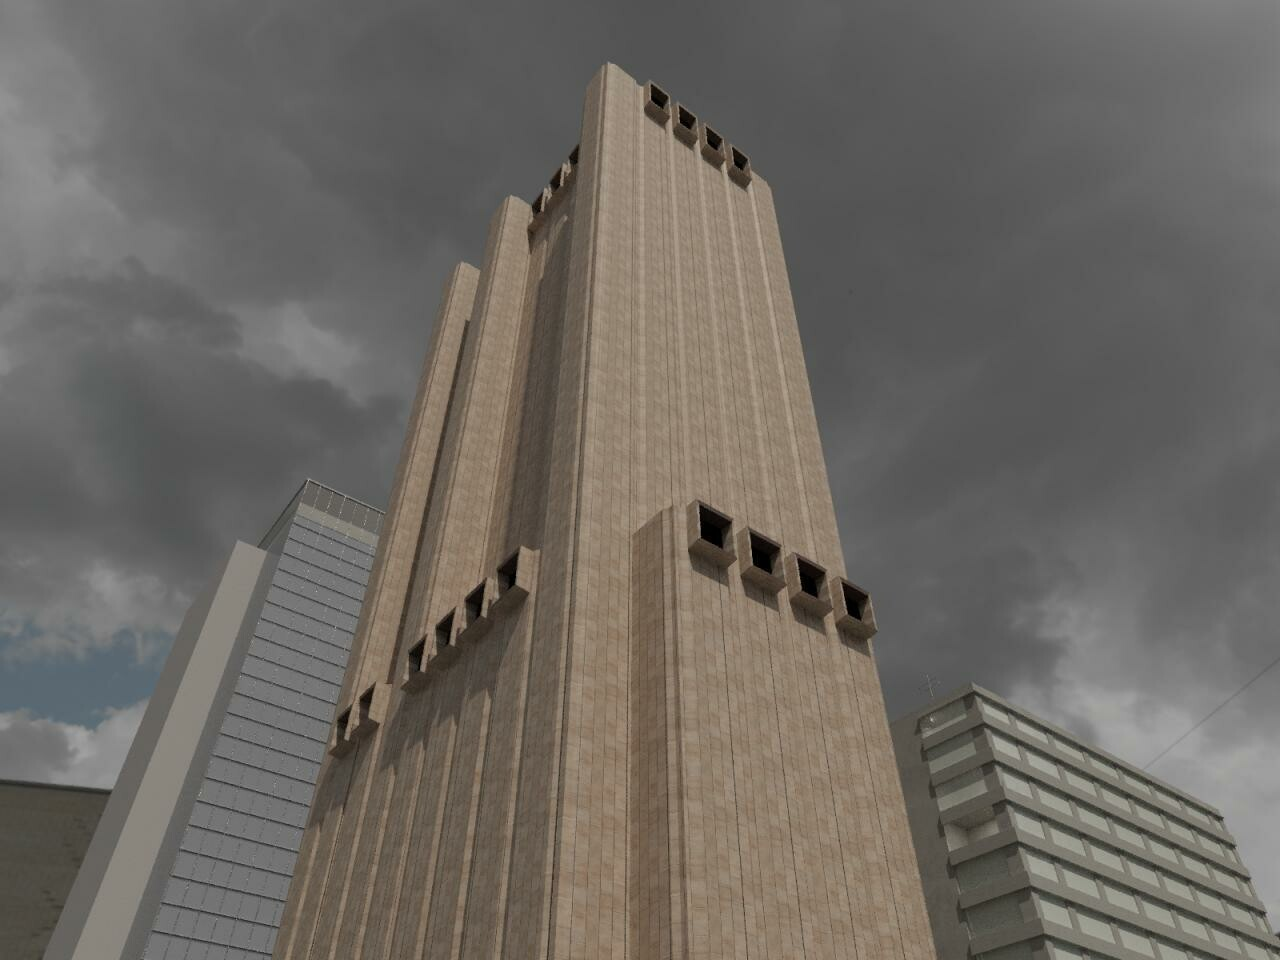 Why Is There A 30 Story Windowless Skyscraper In New York With Giant Ventilation Openings Designed To Survive NuclearFallout